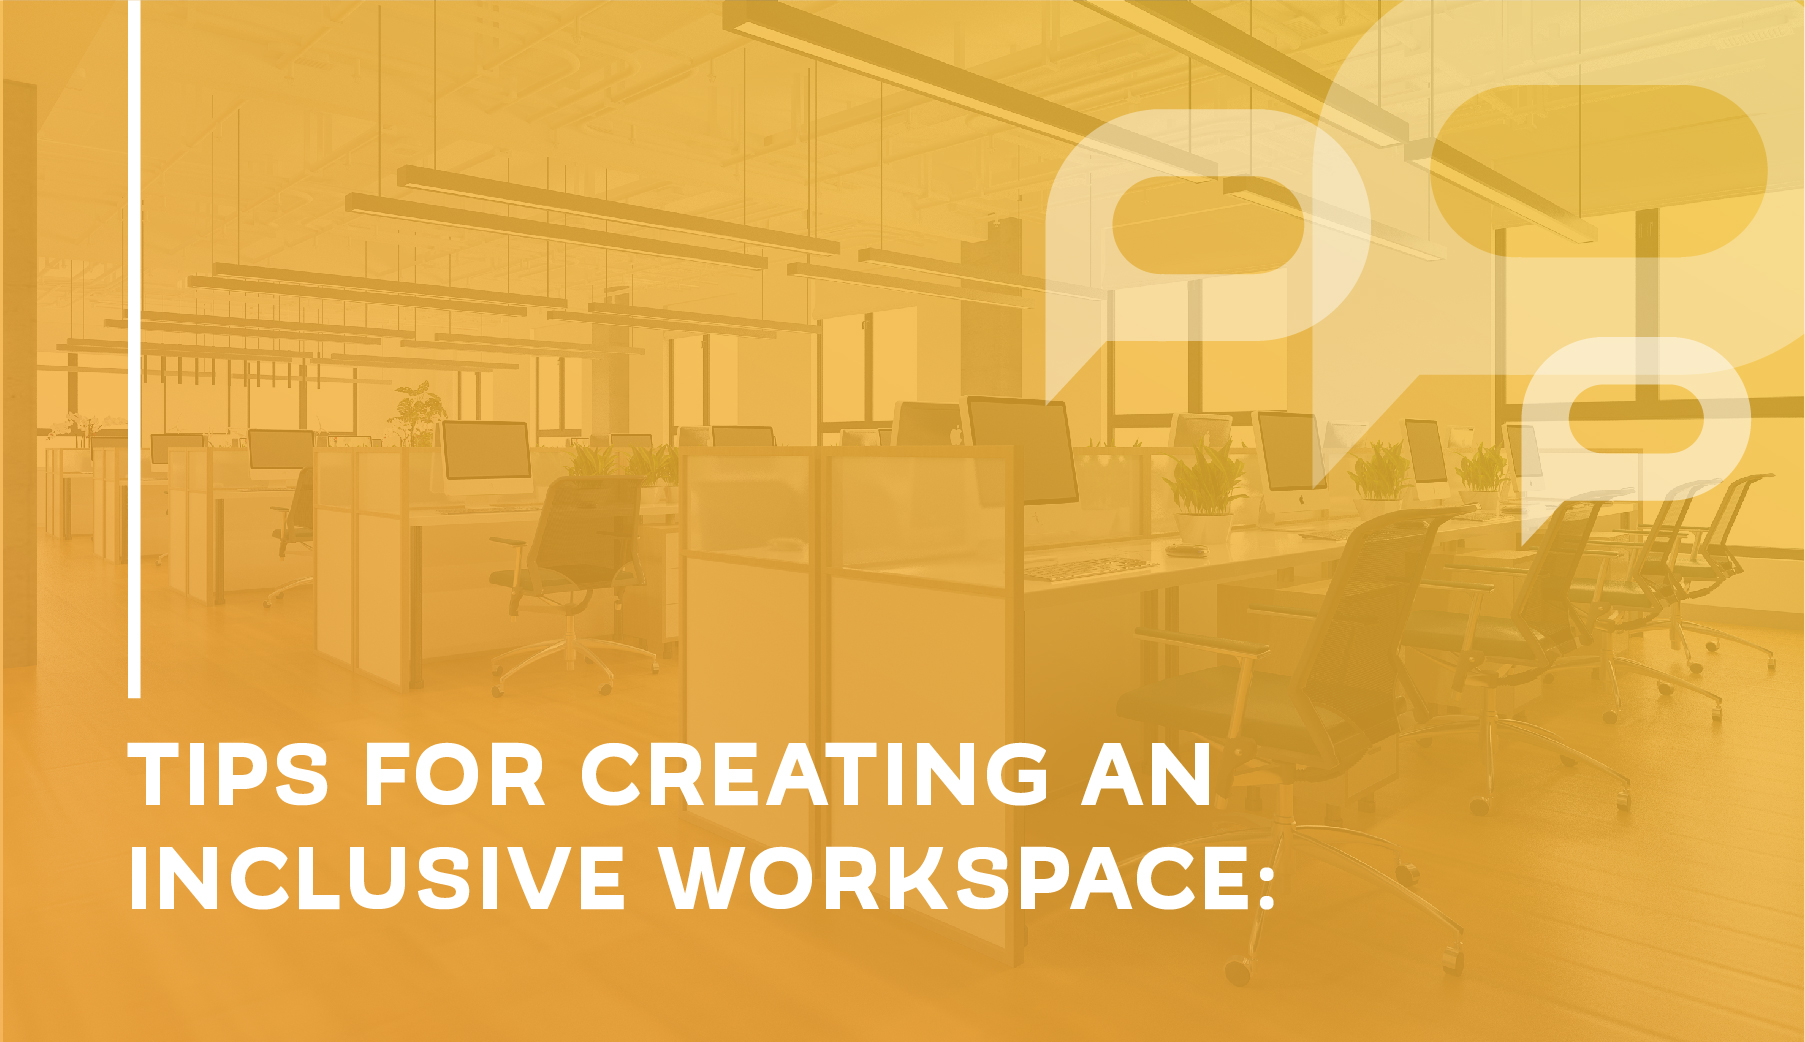 Tips for creating an inclusive workspace